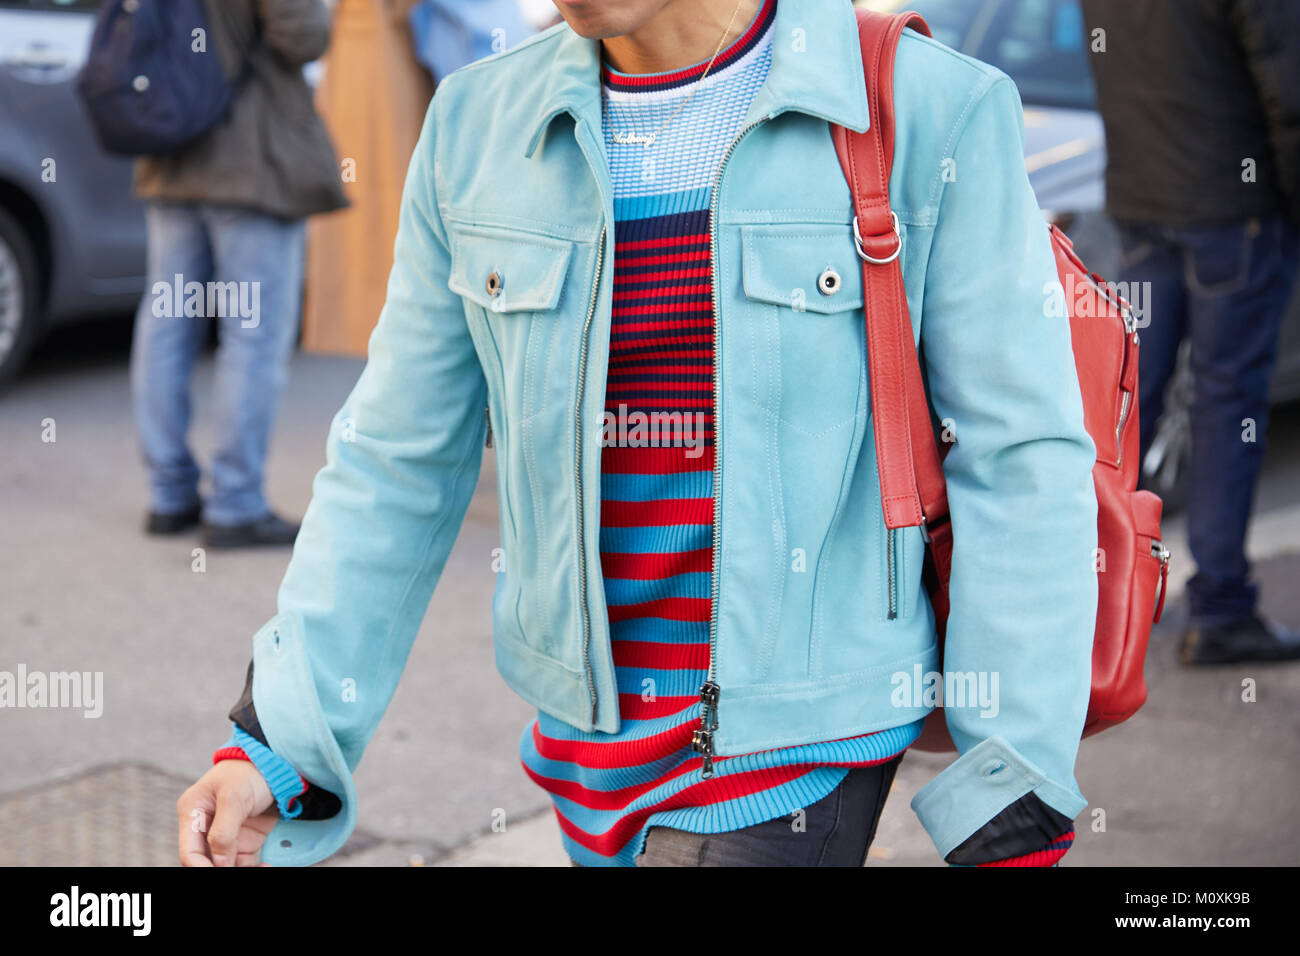 4fd88695d7d MILAN - JANUARY 13  Man with light blue jacket and red, blue striped sweater